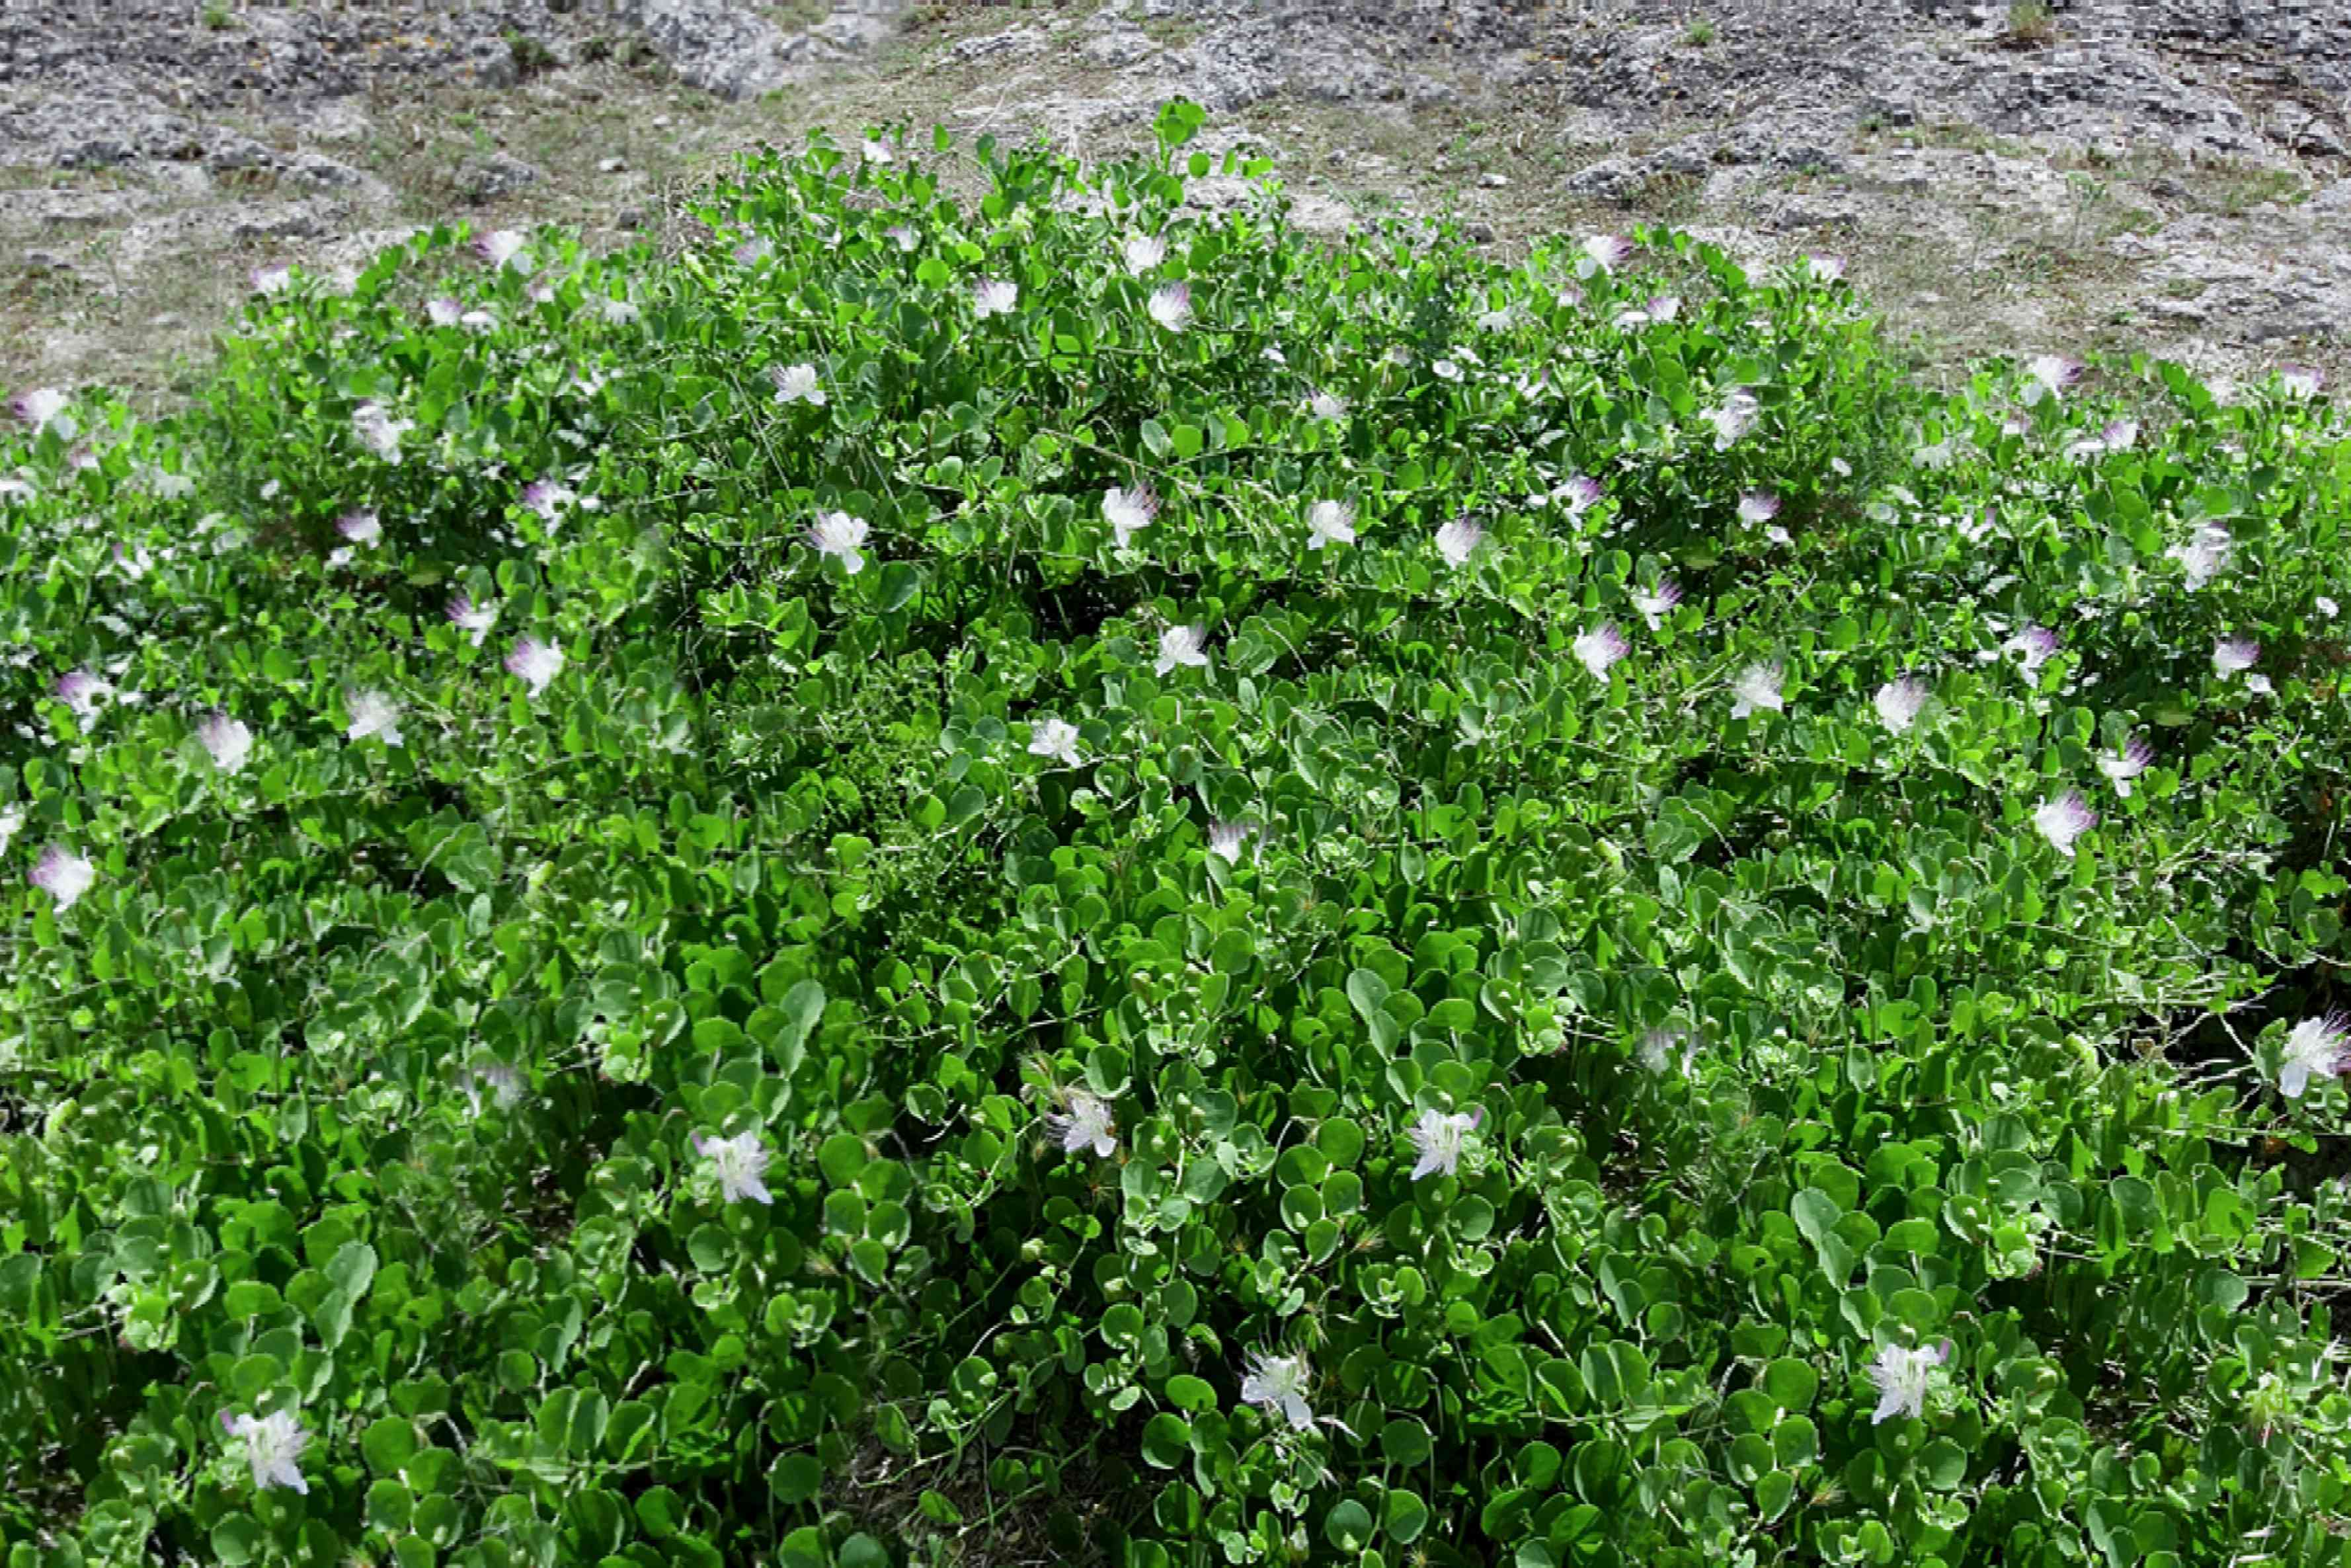 Caper bush with small white flowers